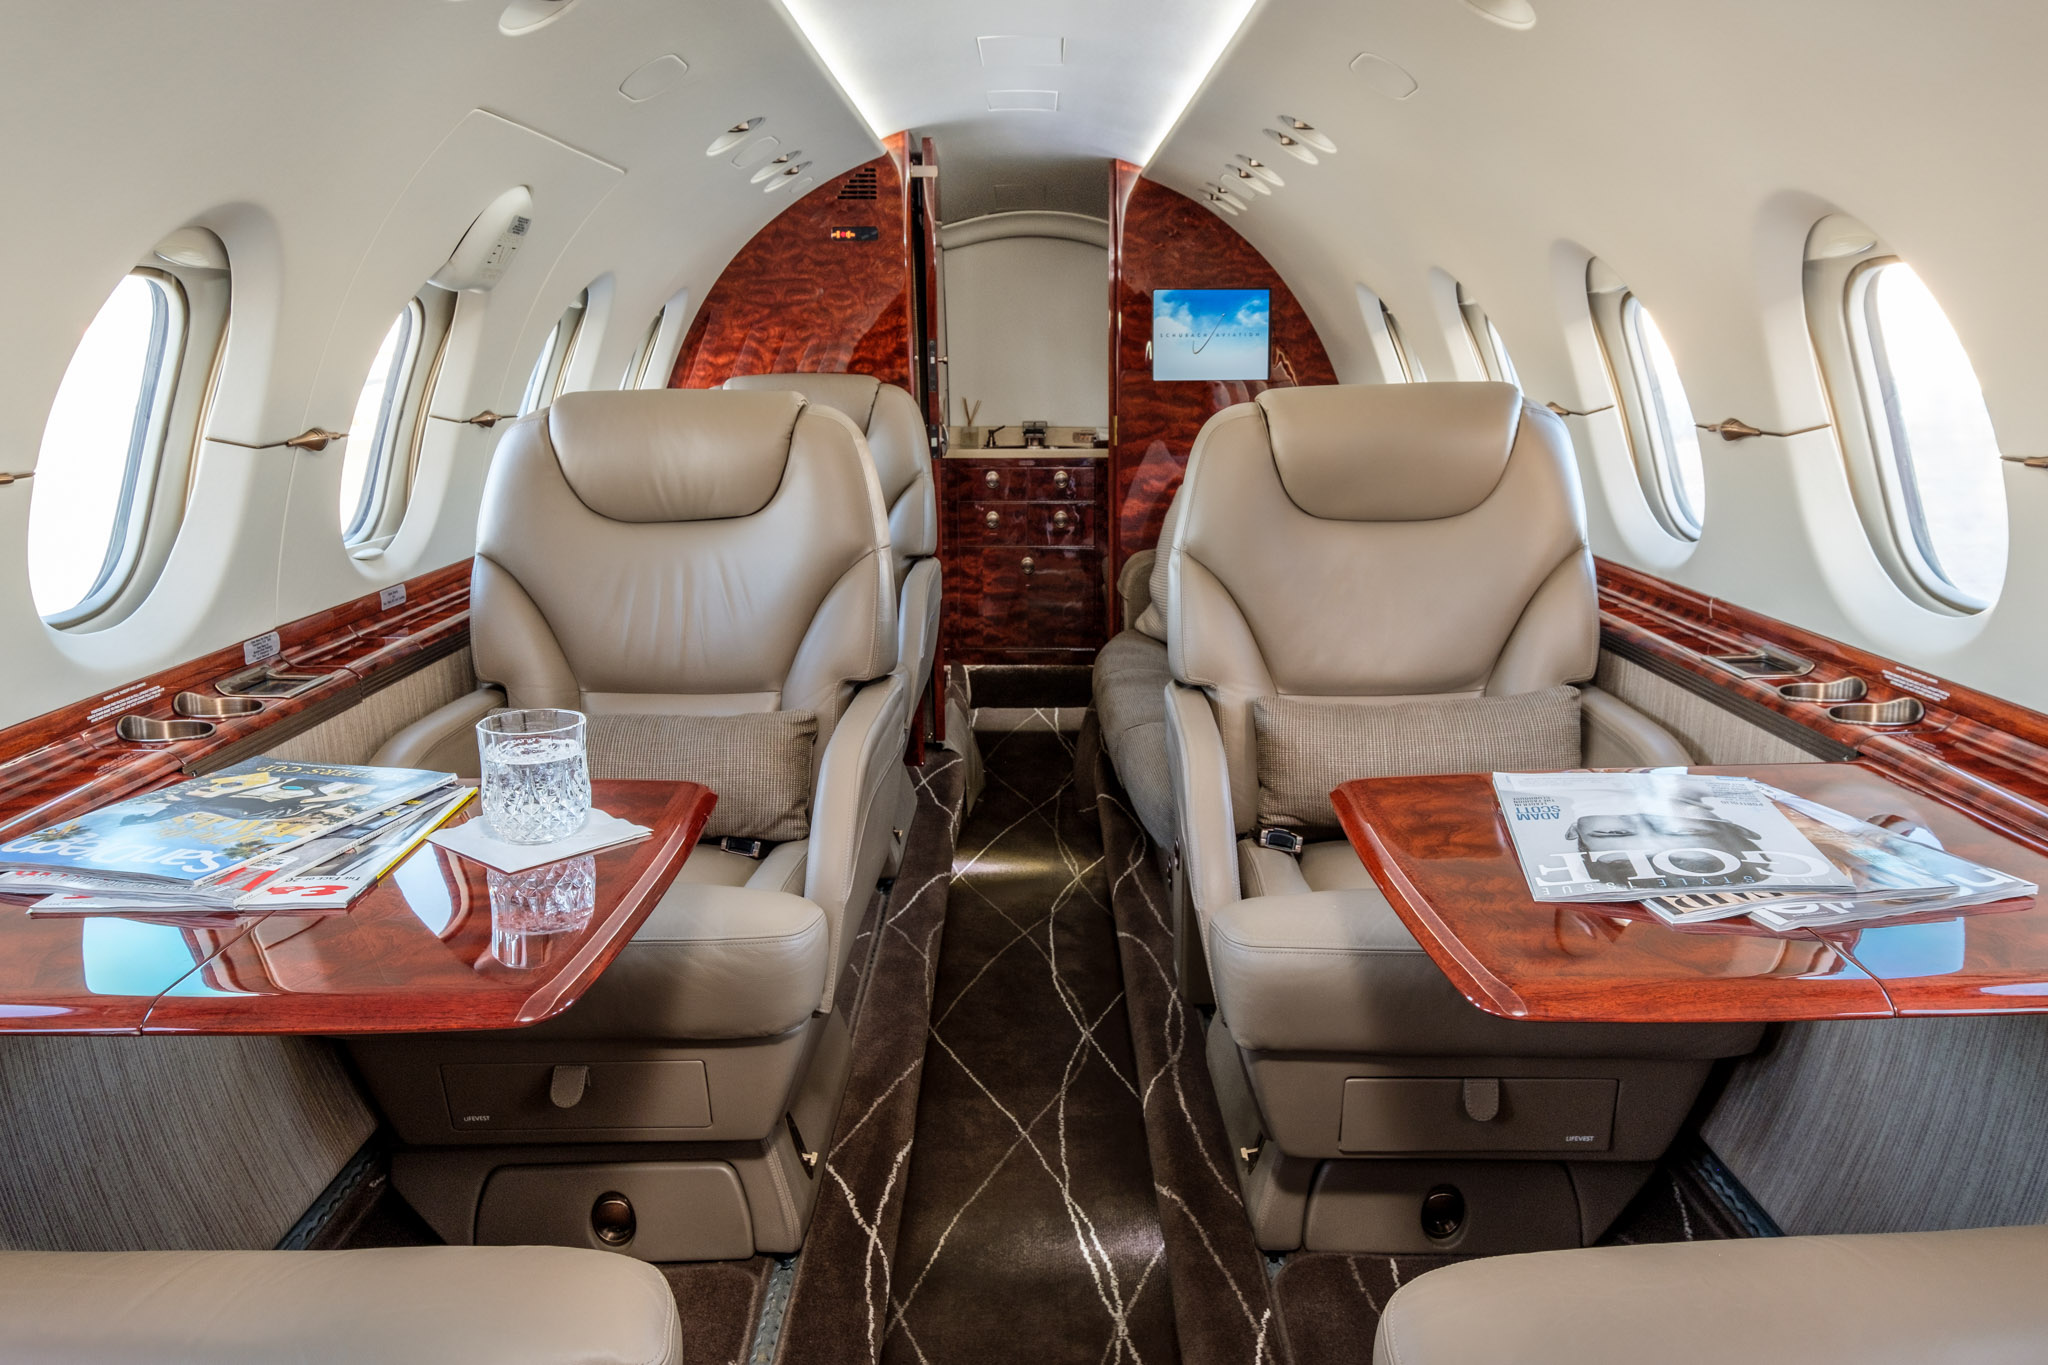 Private charter plane interior with entertainment